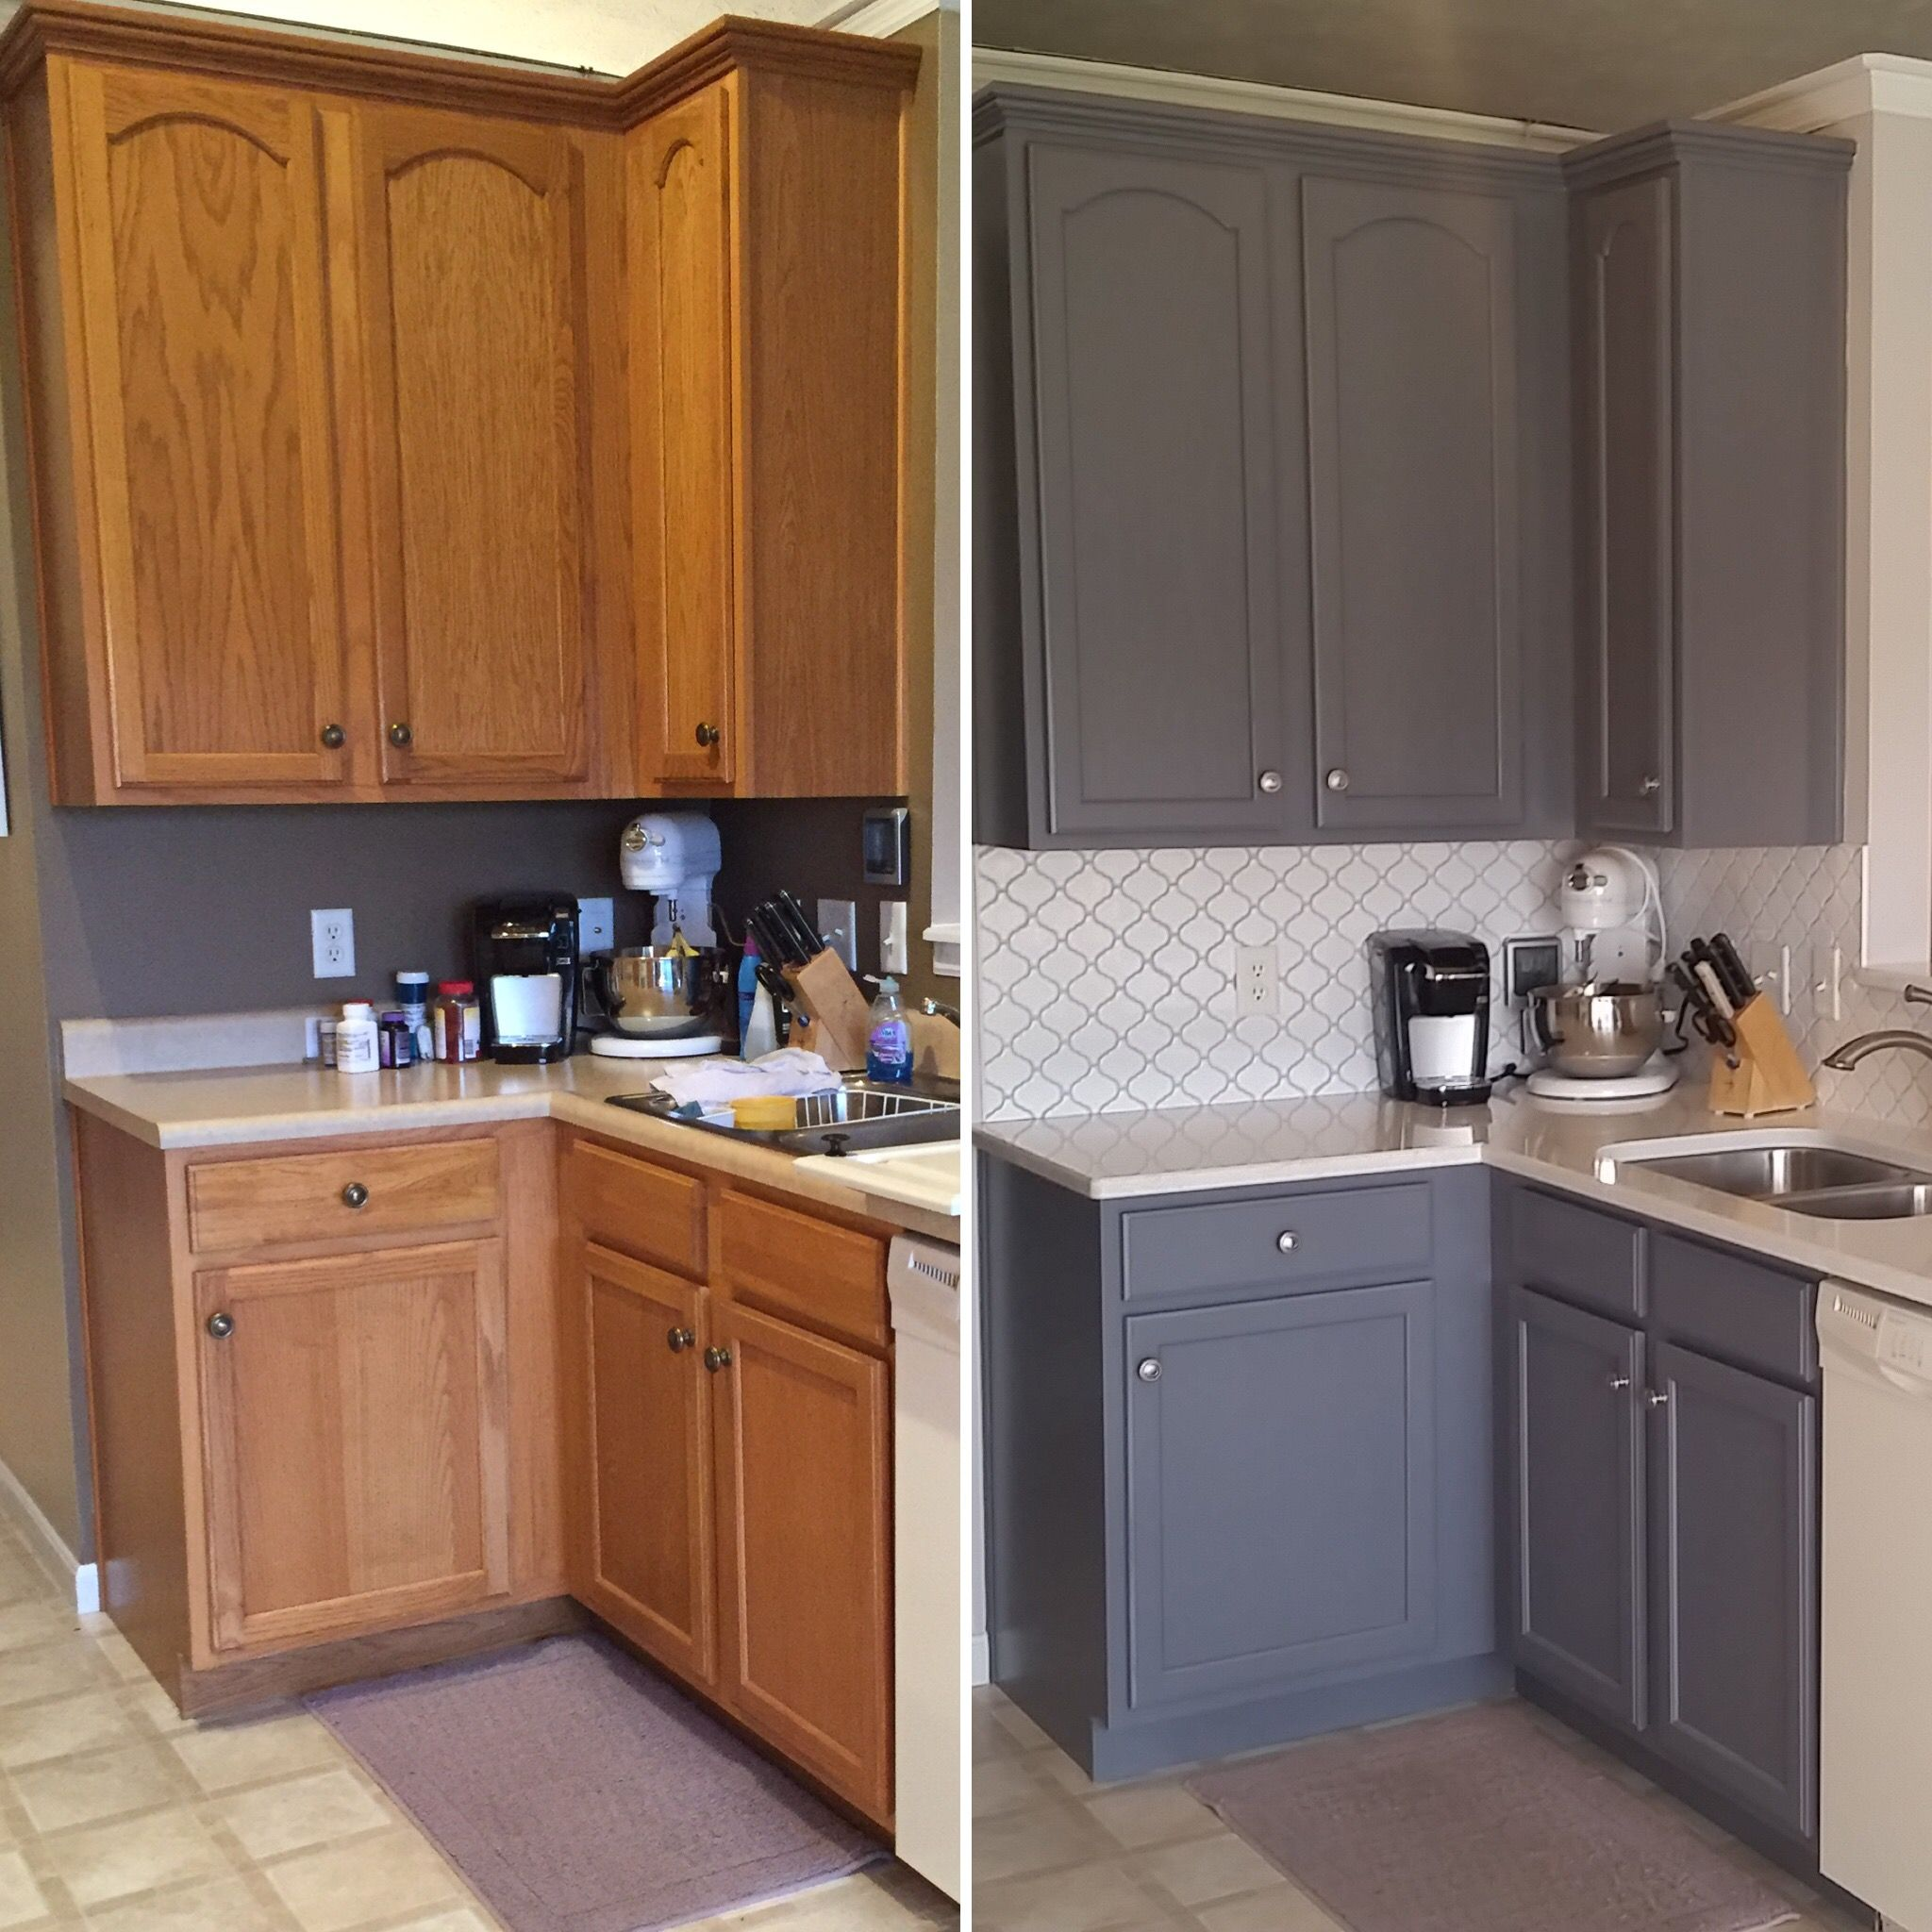 Updated Oak Kitchens Kitchen Cabinets Before And After Old